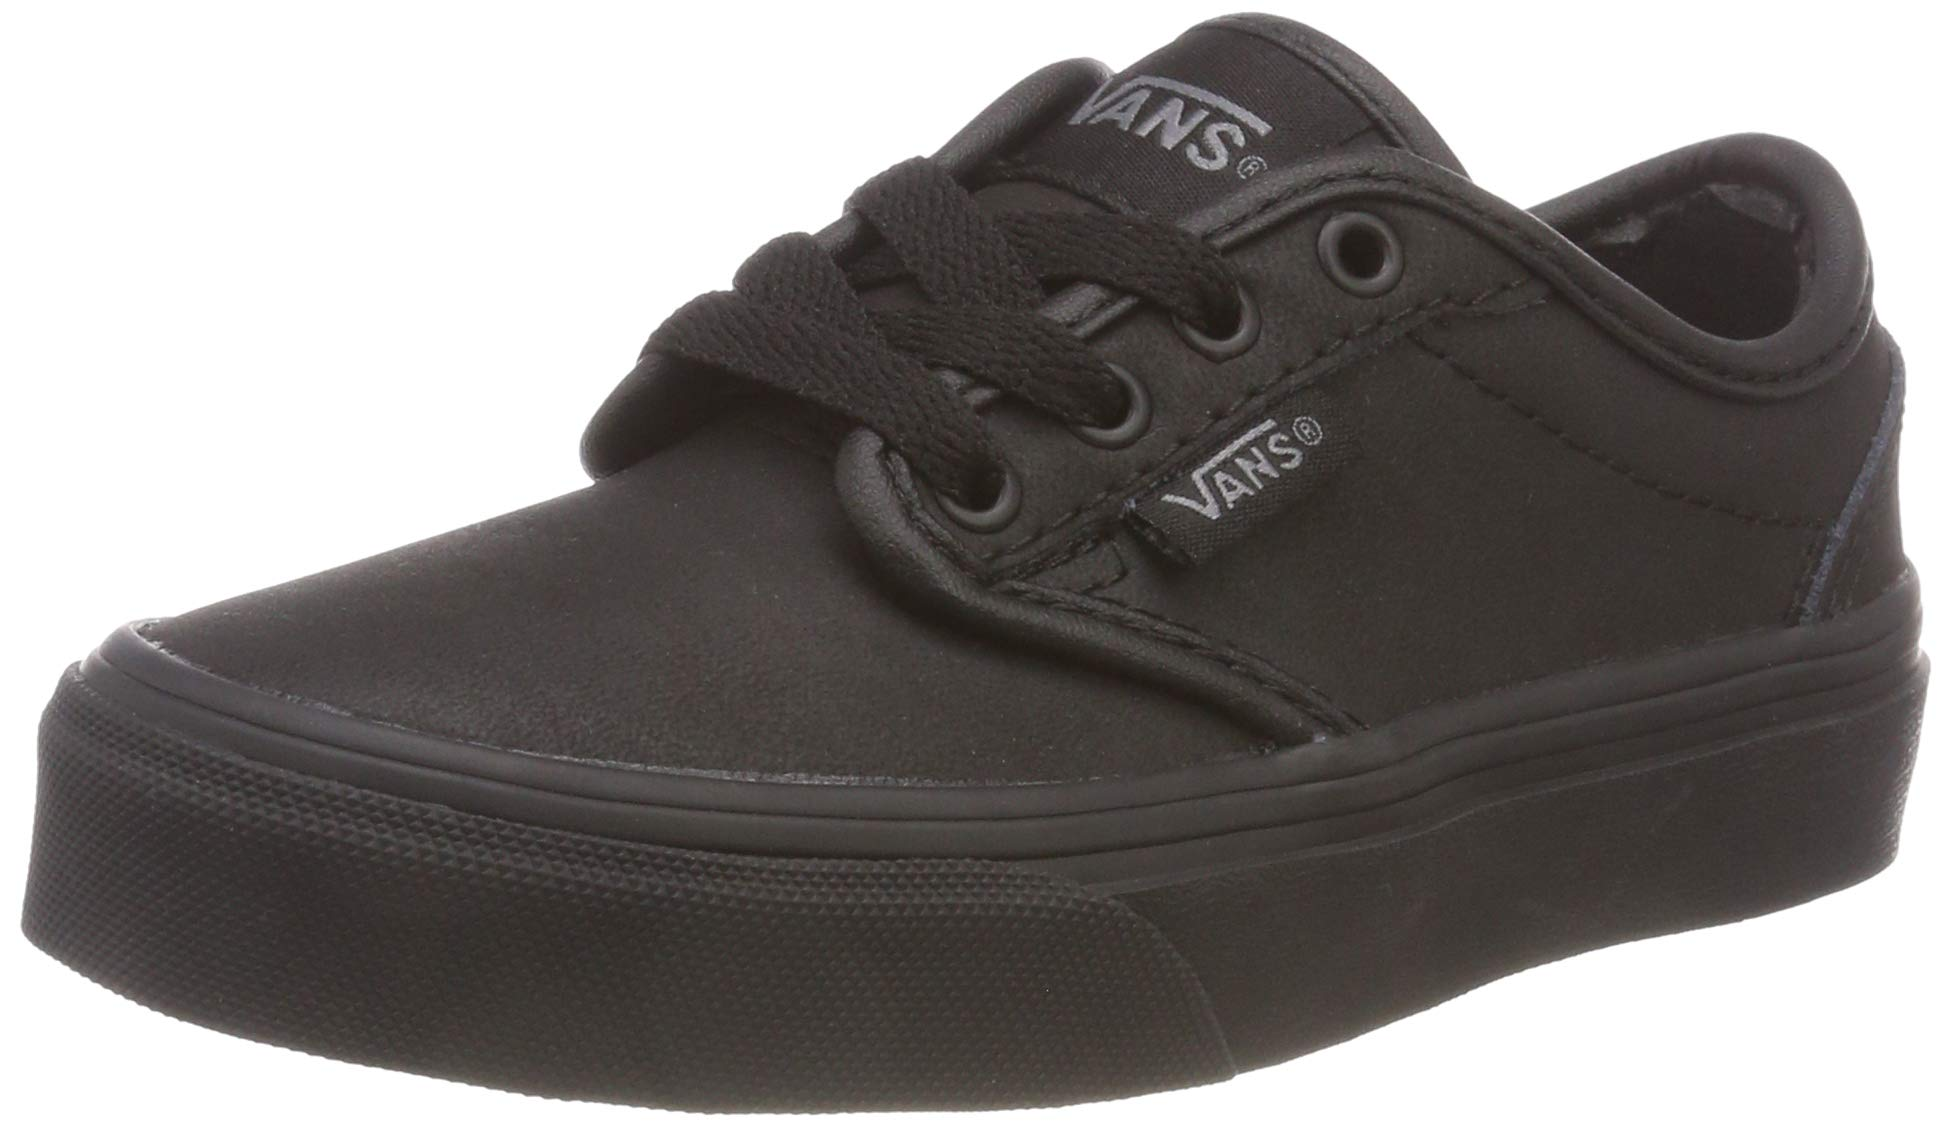 Vans Boys' Atwood Leather Low-Top